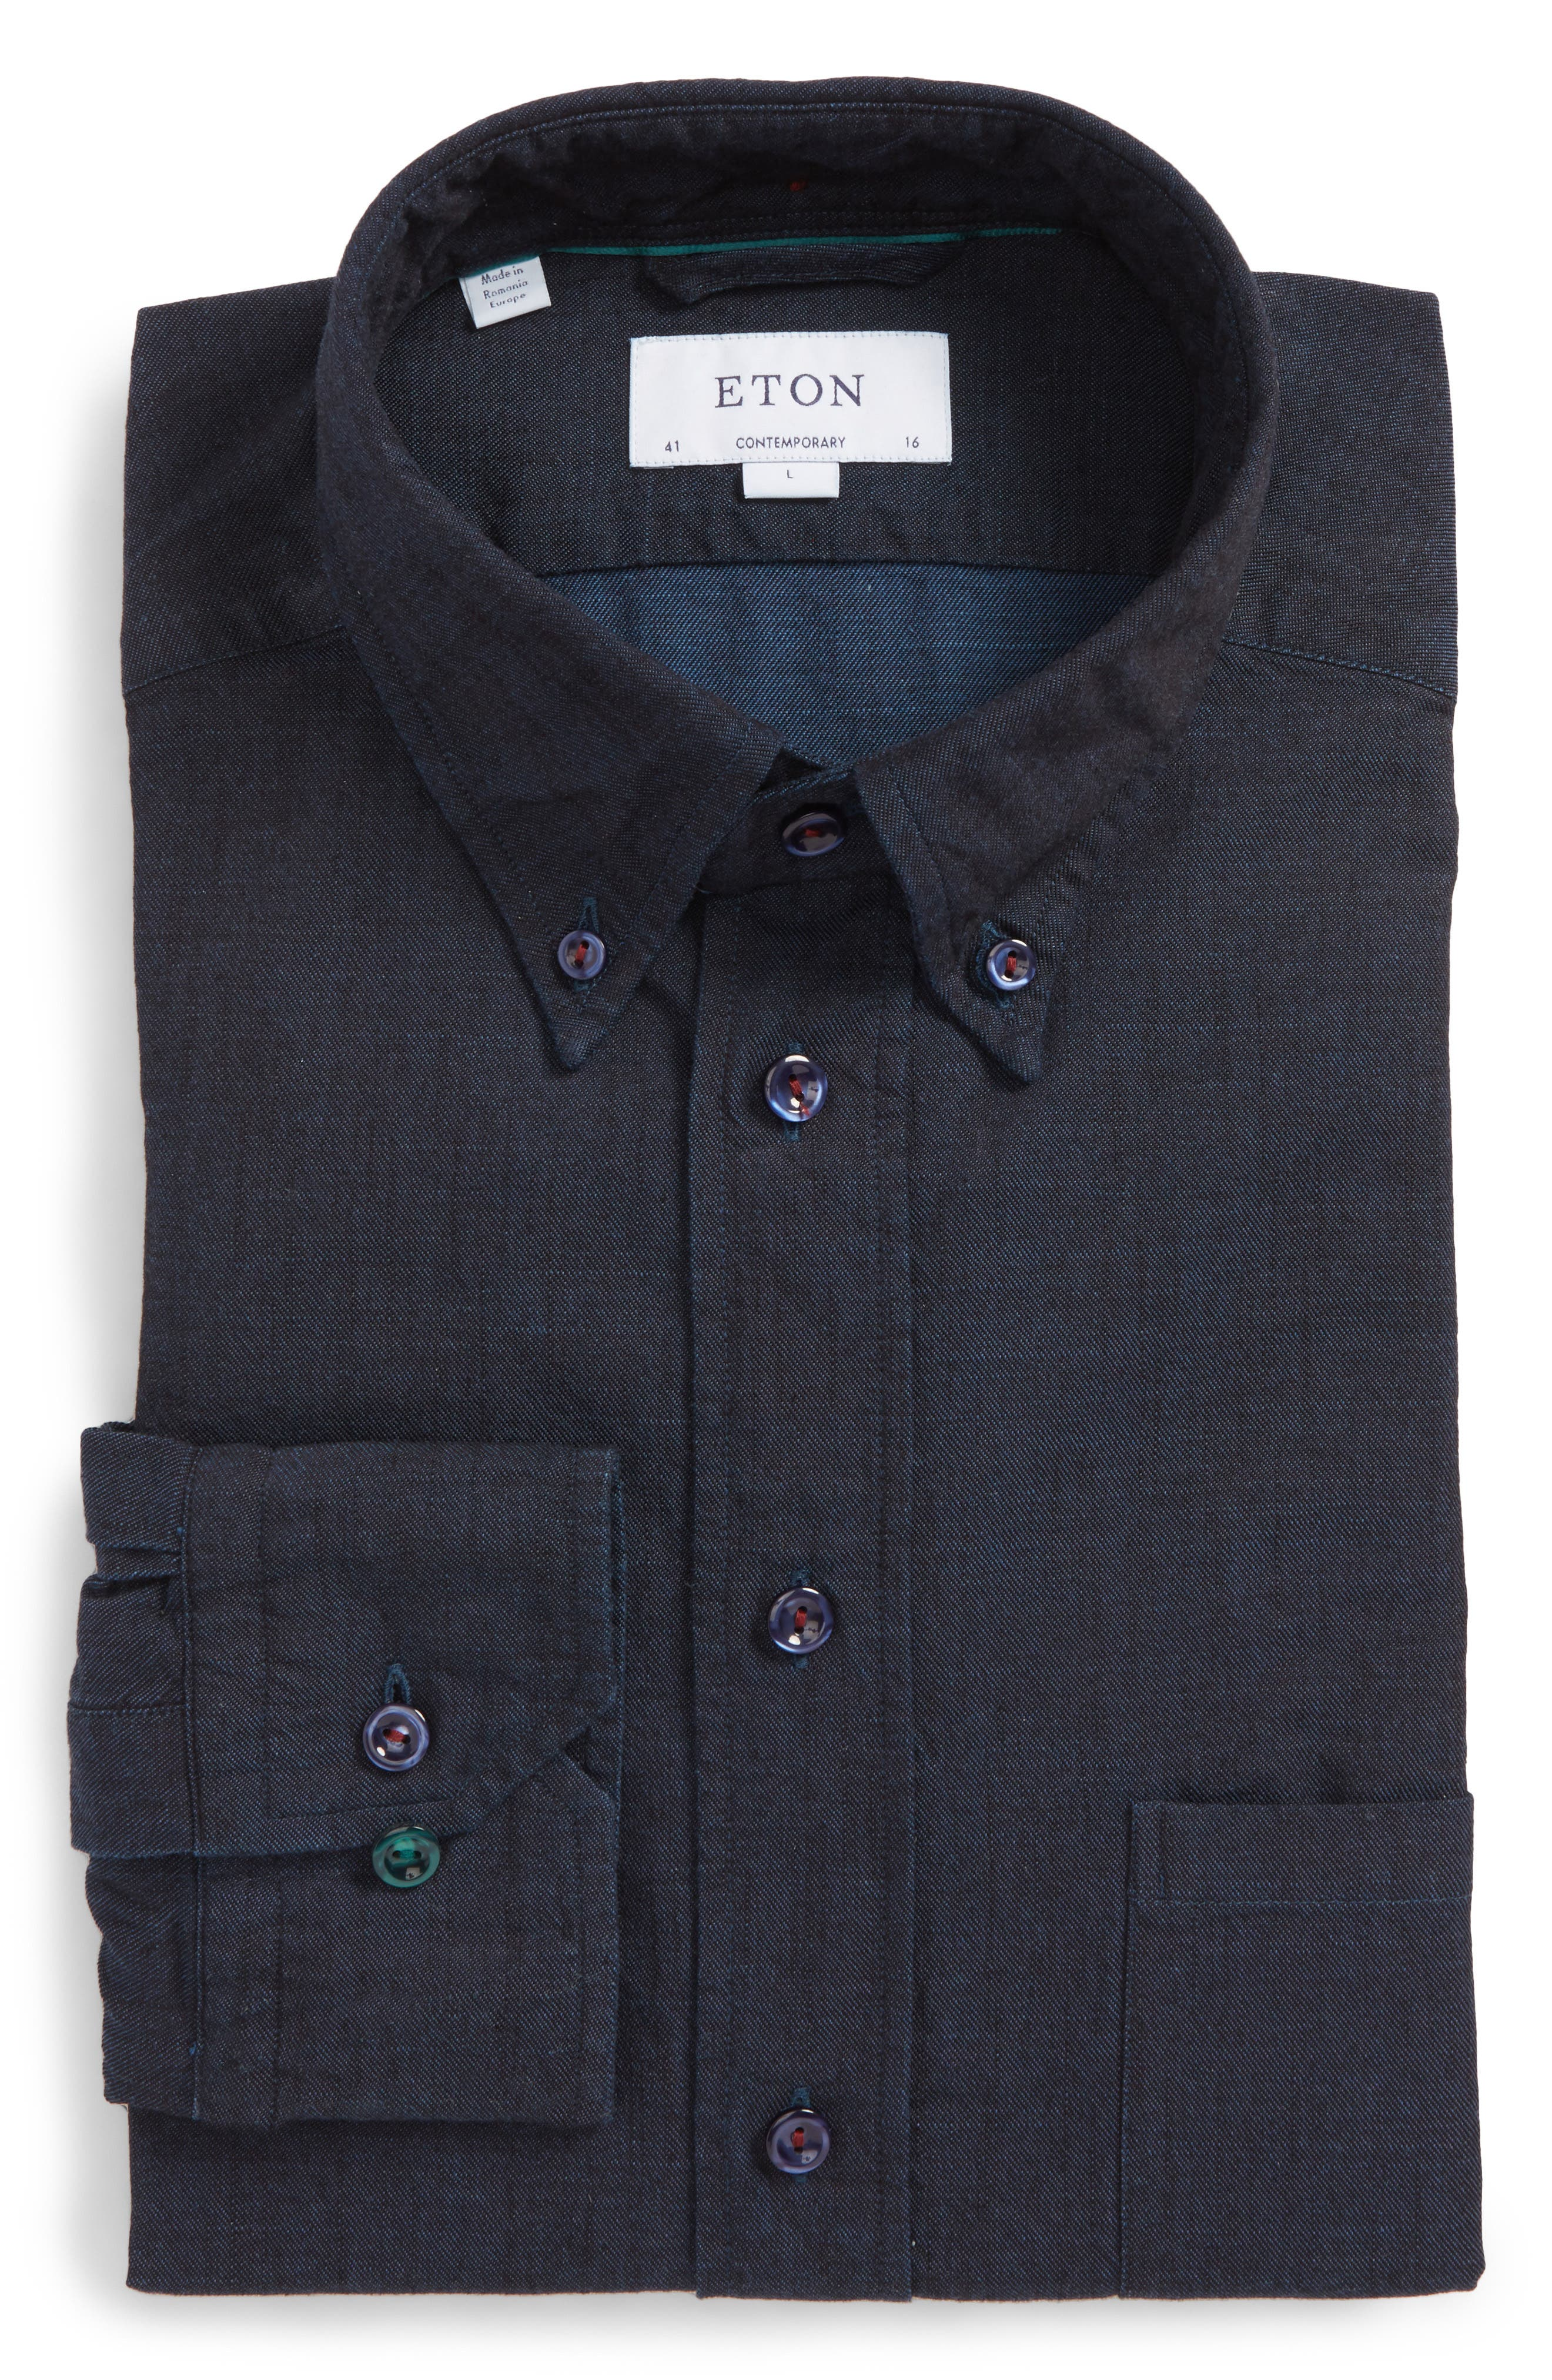 Eton Slim Fit Chambray Dress Shirt